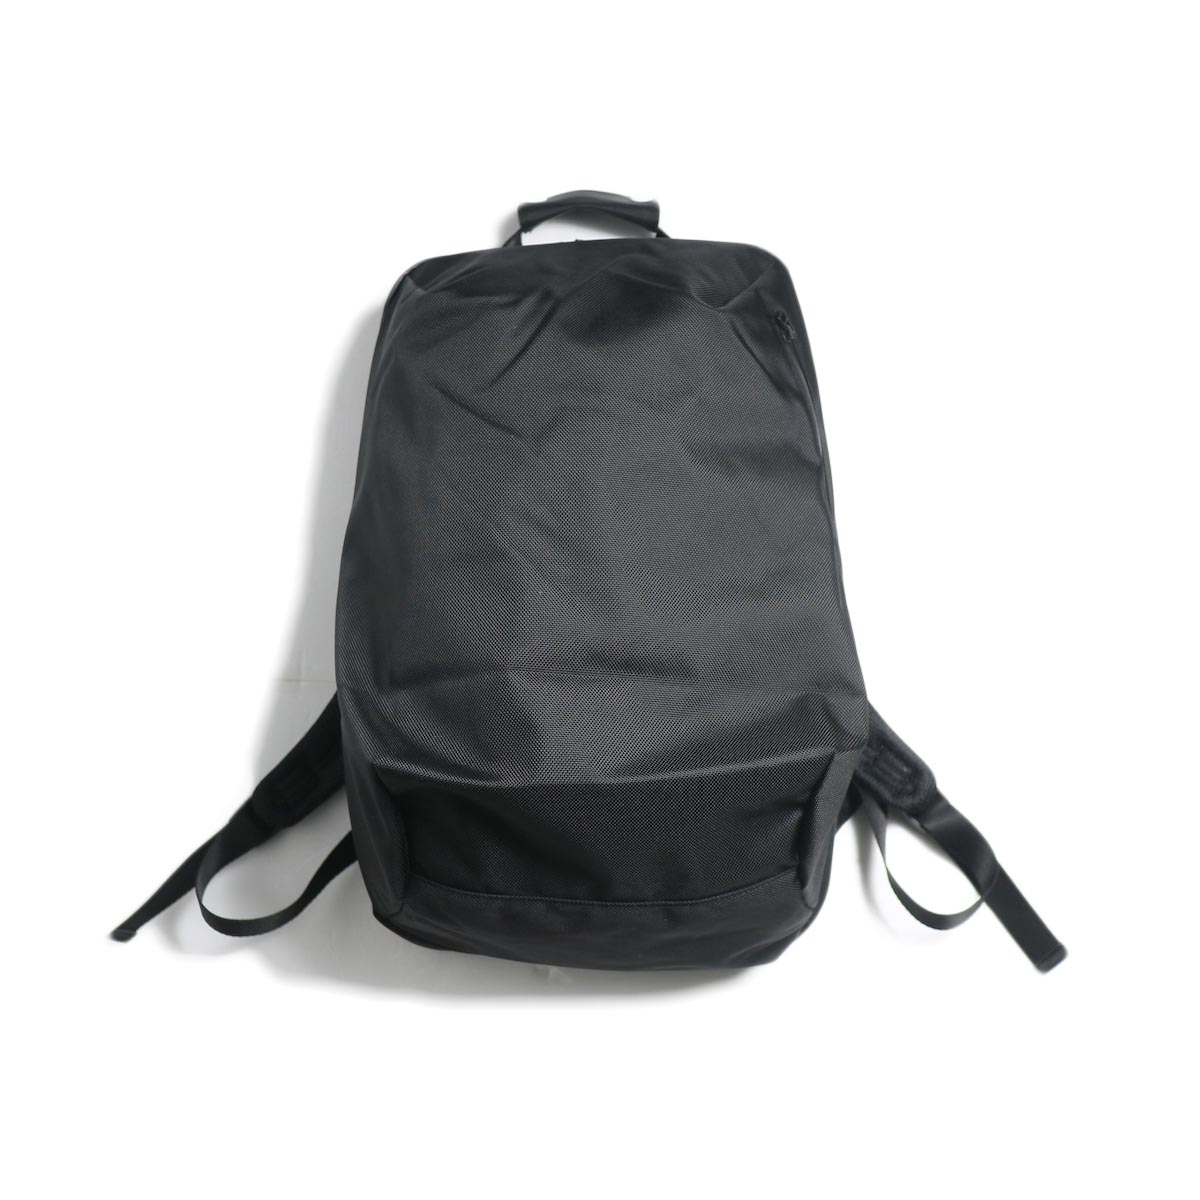 UNIVERSAL PRODUCTS / New Utility Bag -Black